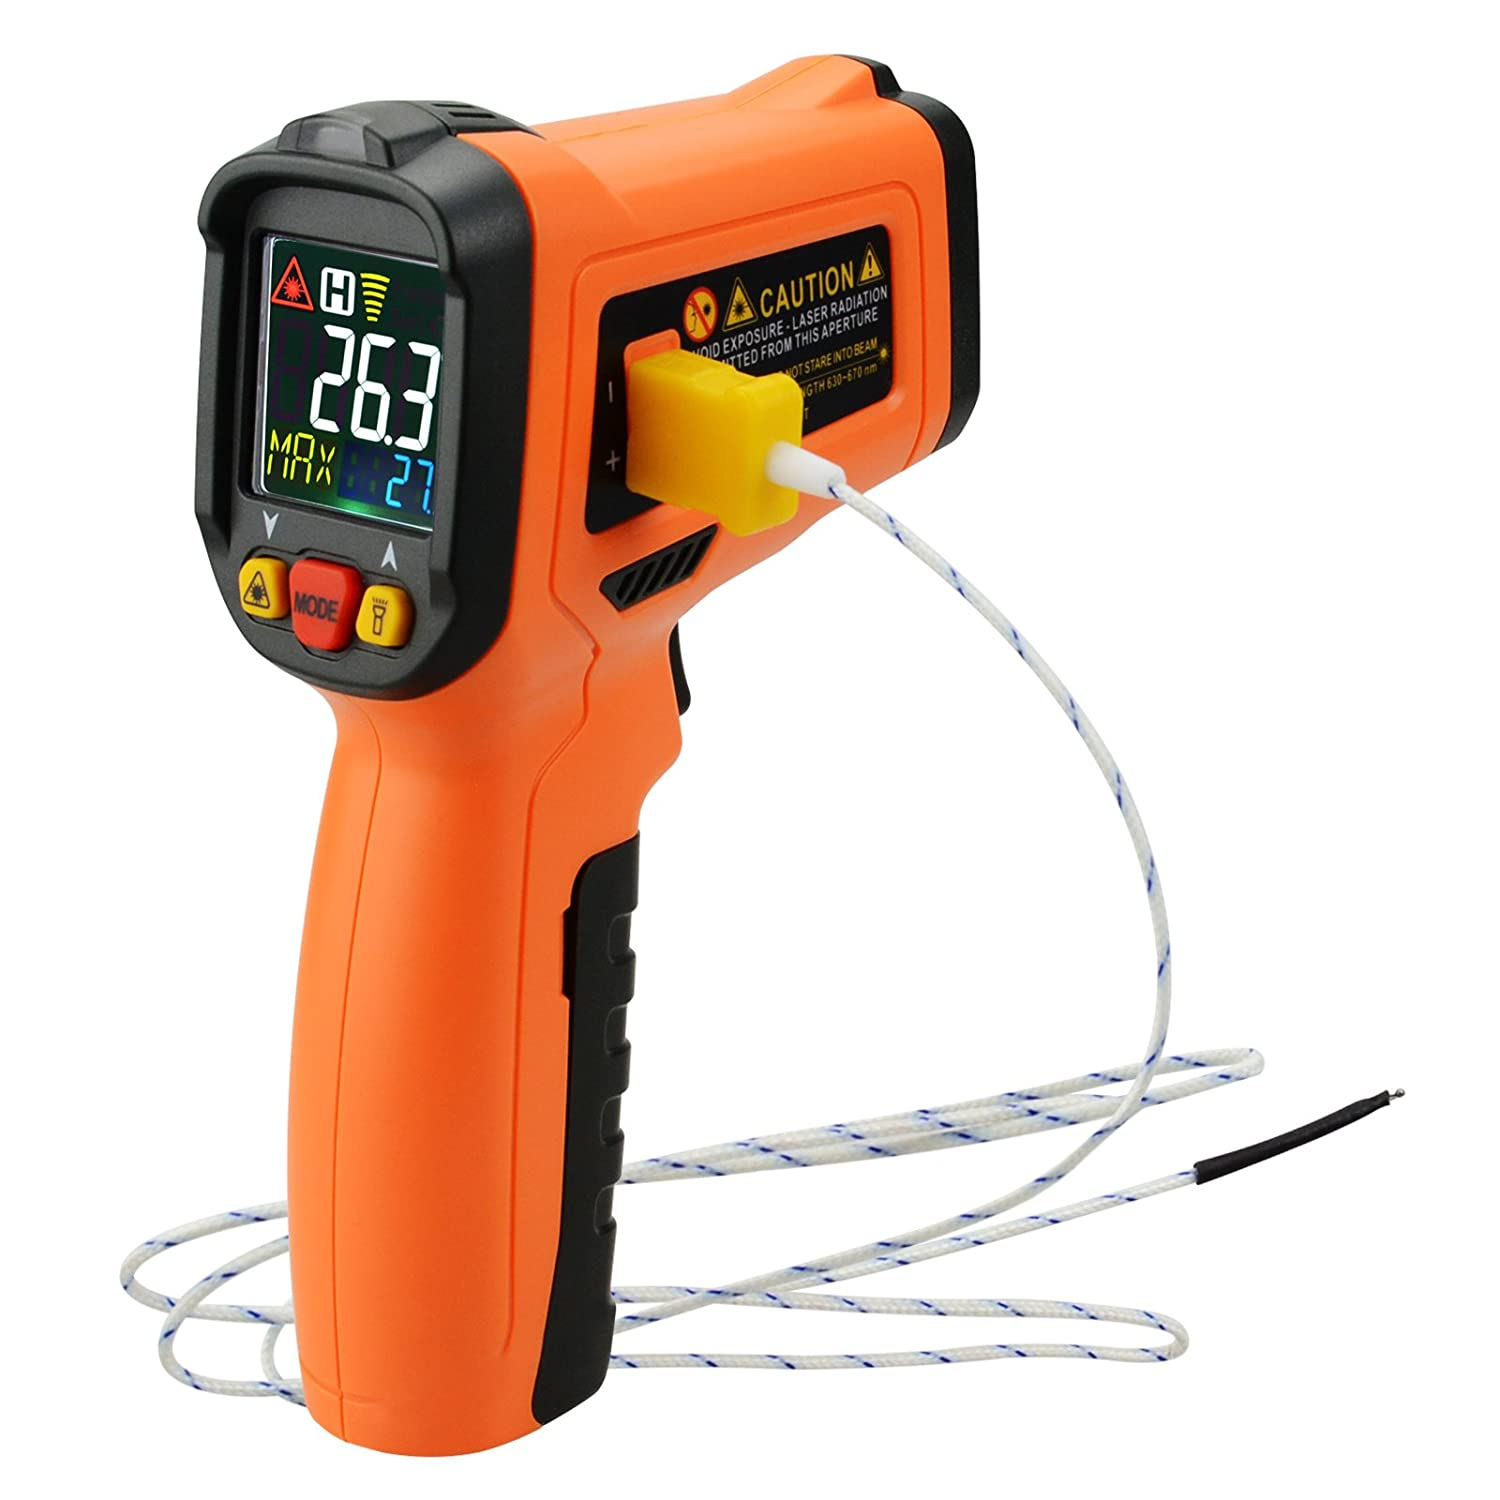 Non Contact Infrared Thermometer w/ K-Type Thermocouple & UV Light Leak Detection, Color Digital 0.5s Instant Read Hand Held Laser IR Temp Meter, for Adults/Cooking/Automotive/Industrial/Lab, -50~800° C(-58~1472° F) -50~800°C(-58~1472°F) THE-222